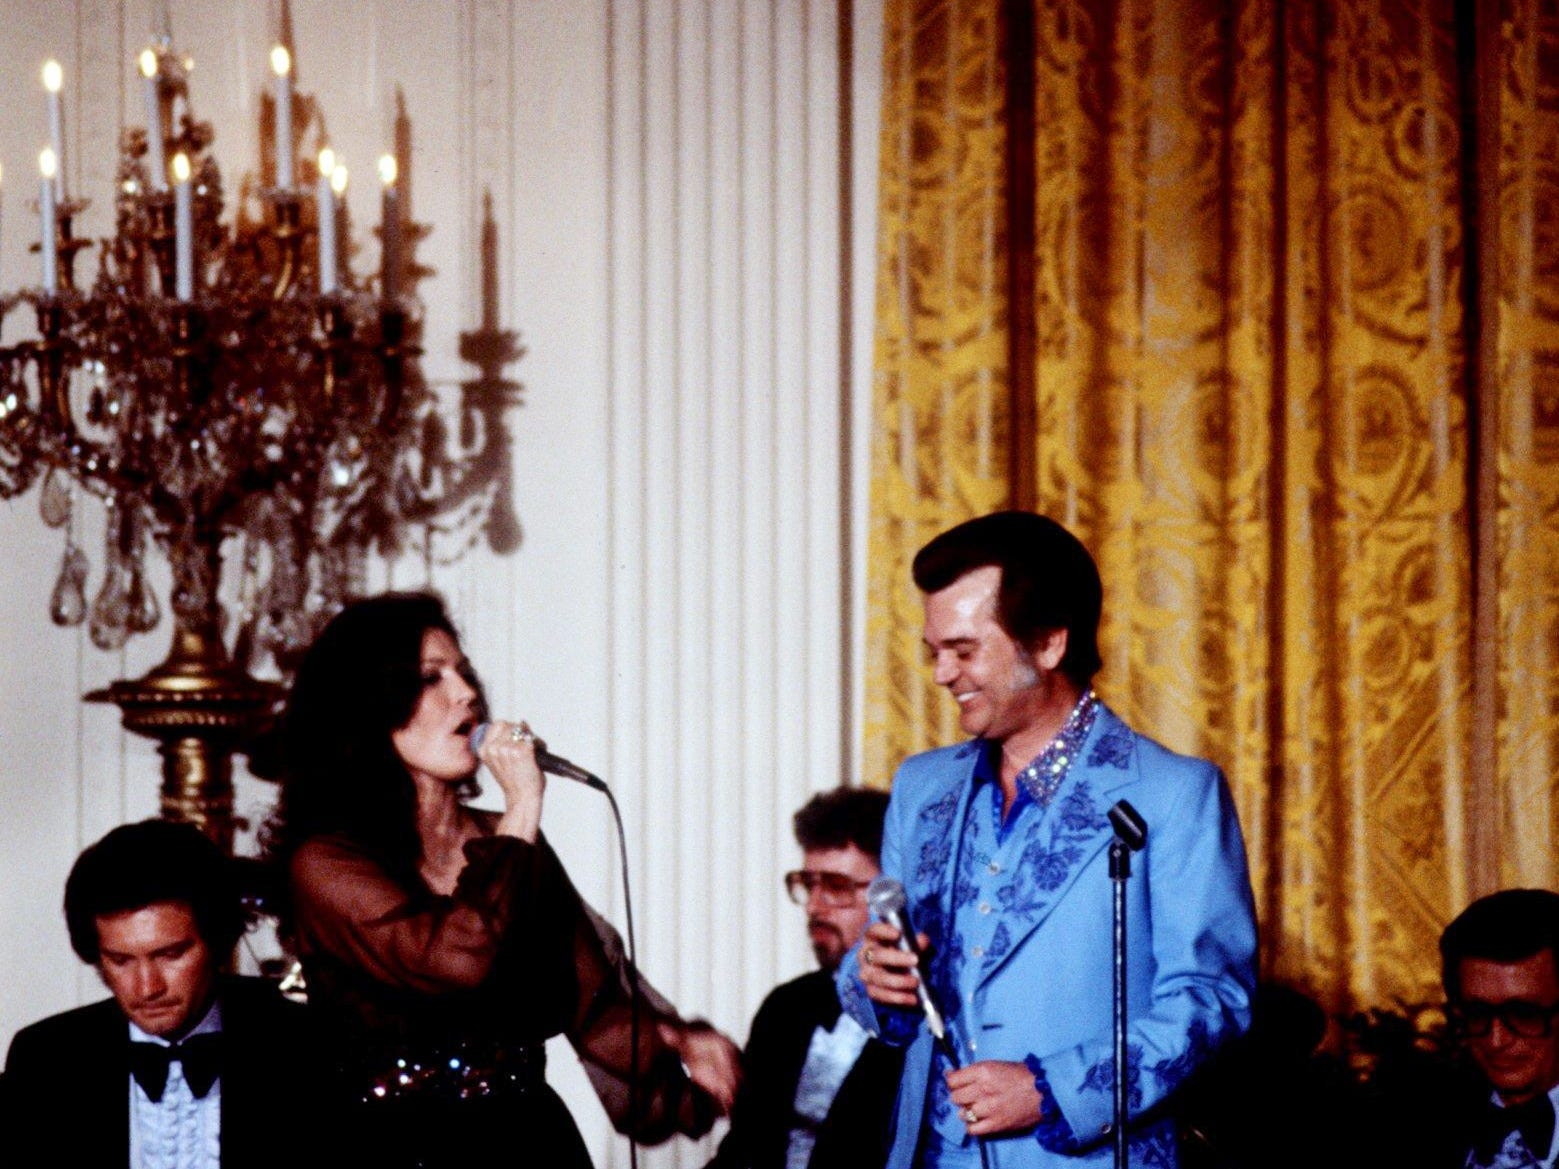 """Loretta Lynn, left, and Conway Twitty sing out with """"Louisiana Women, Mississippi Man,"""" under a sparkling chandelier of the East Room of the White House during country music night in Washington, D.C. April 17, 1978. More than 200 guests attended a gala reception give by President and Mrs. Jimmy Carter honoring the CMA."""